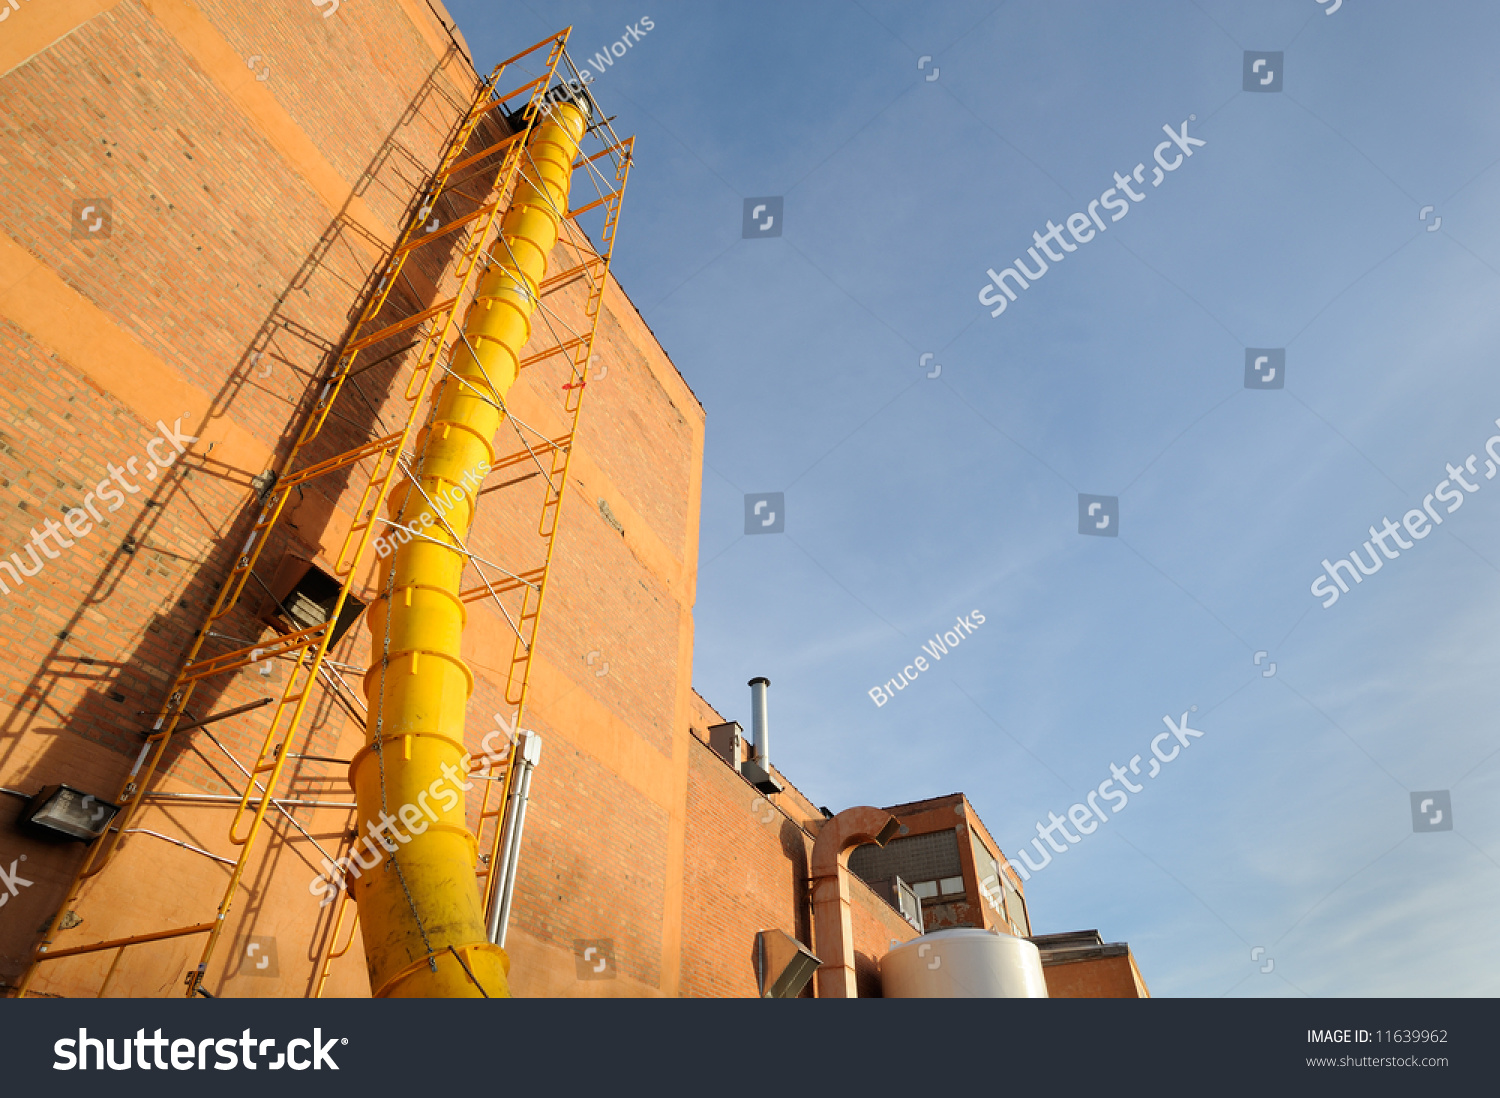 Waste Chute Used In Construction Demolition Stock Photo 11639962 : Shutterstock